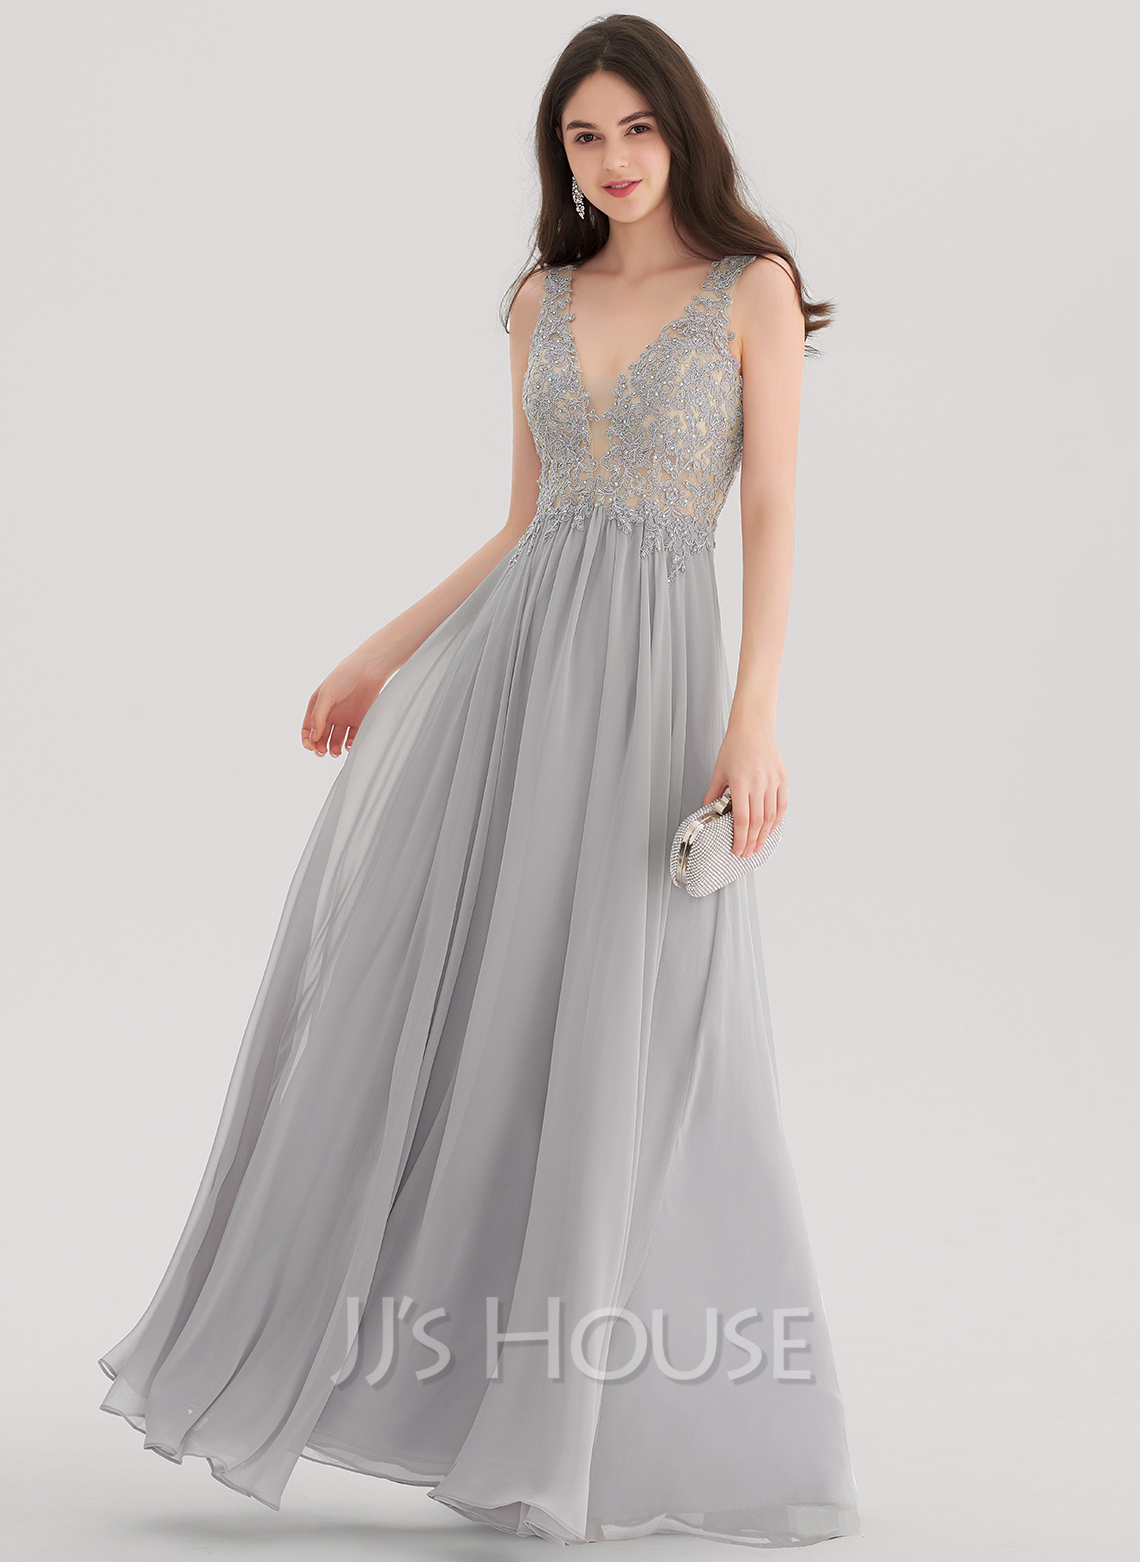 c40aa792098 A-Line Princess V-neck Floor-Length Chiffon Prom Dresses With Beading.  Loading zoom